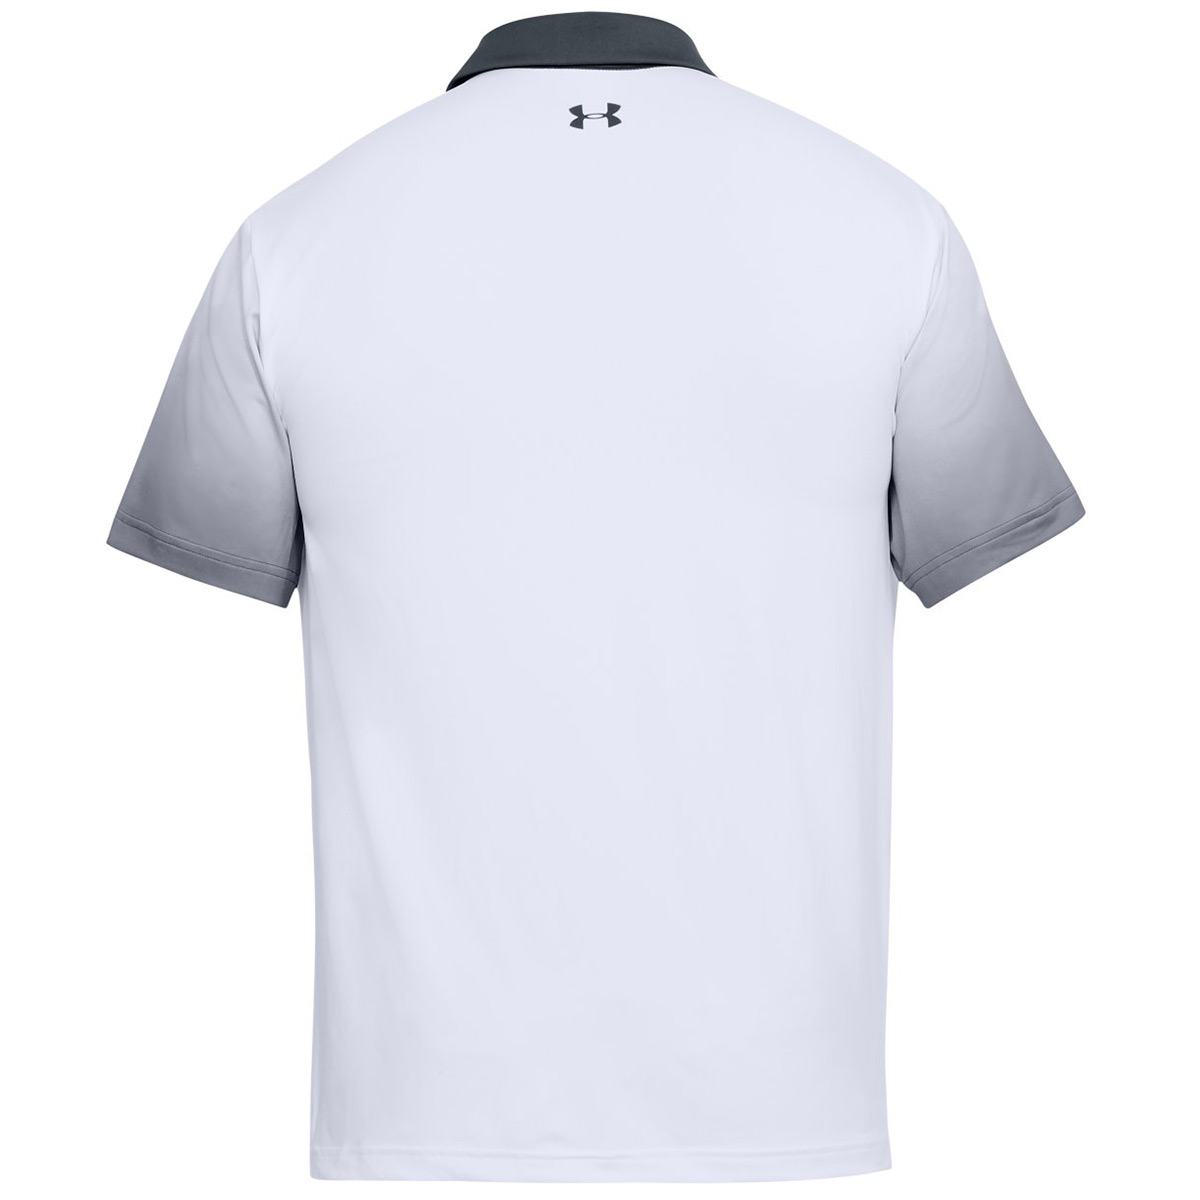 Under-Armour-Mens-UA-Playoff-Performance-Golf-Polo-Shirt-42-OFF-RRP thumbnail 60